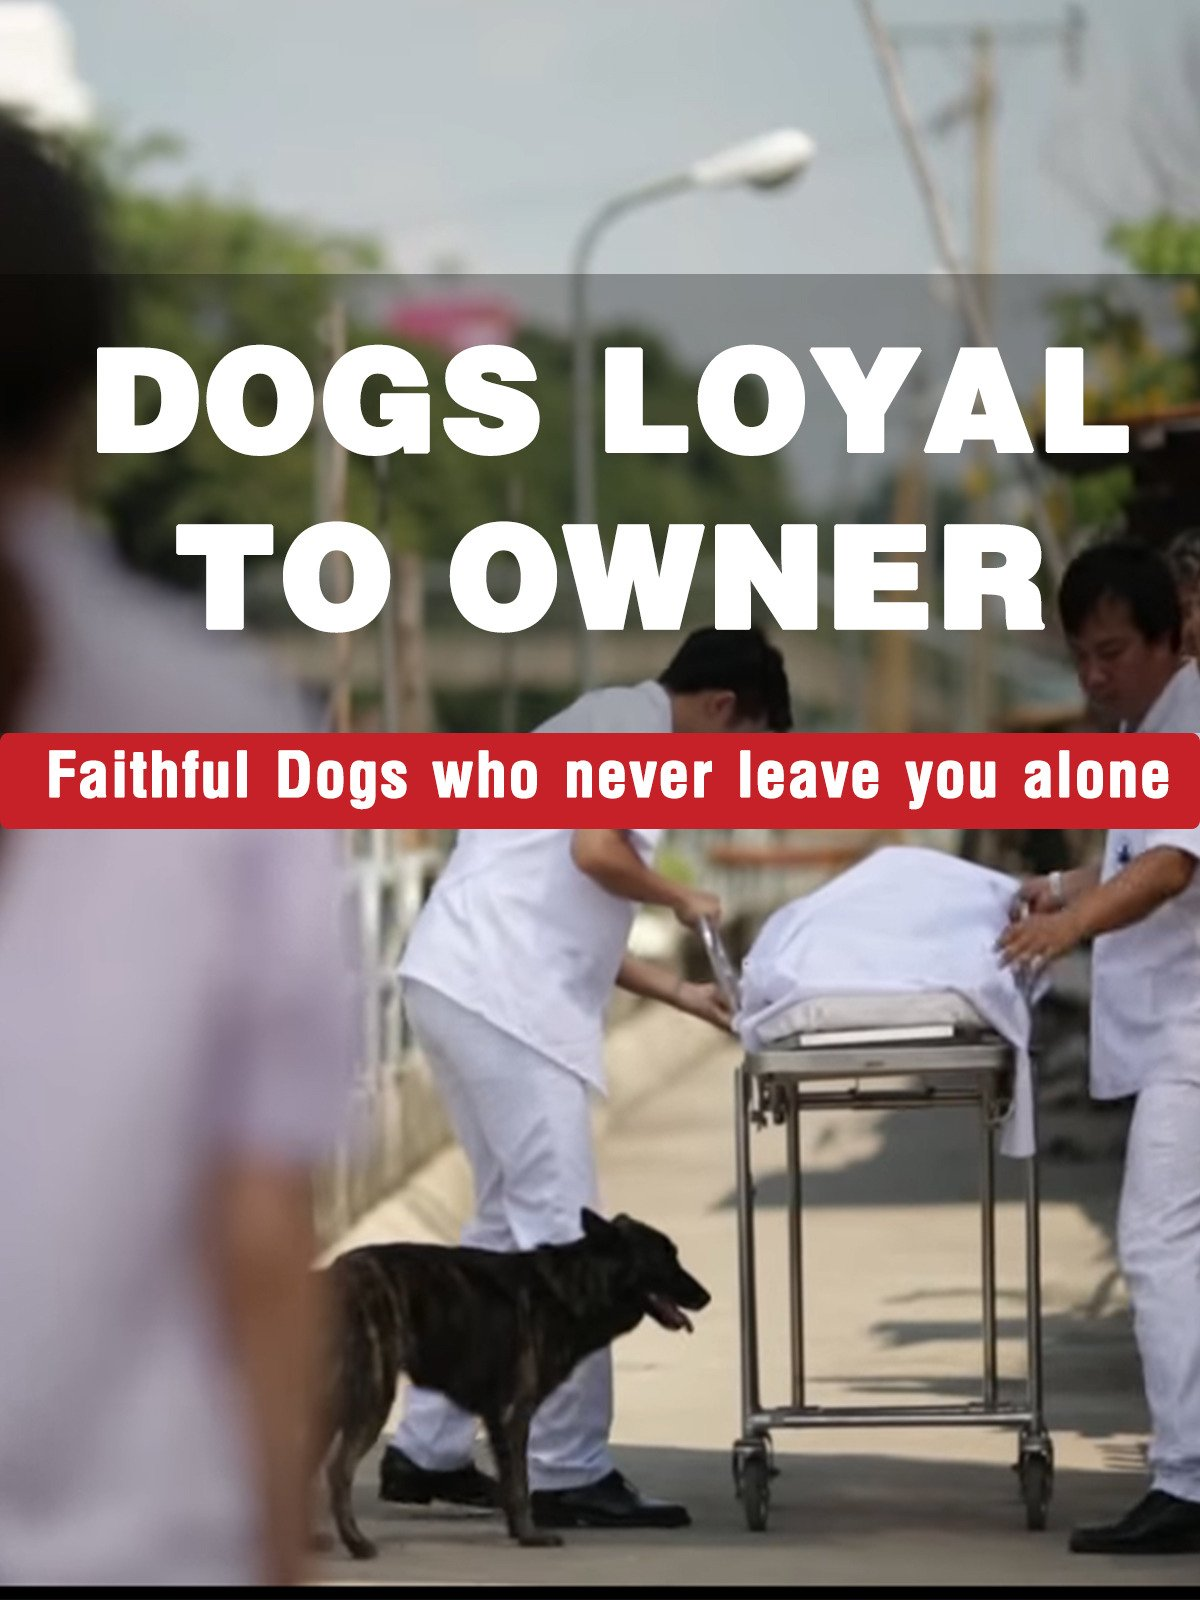 Dogs Loyal to Owner - Faithful Dogs who never leave you alone